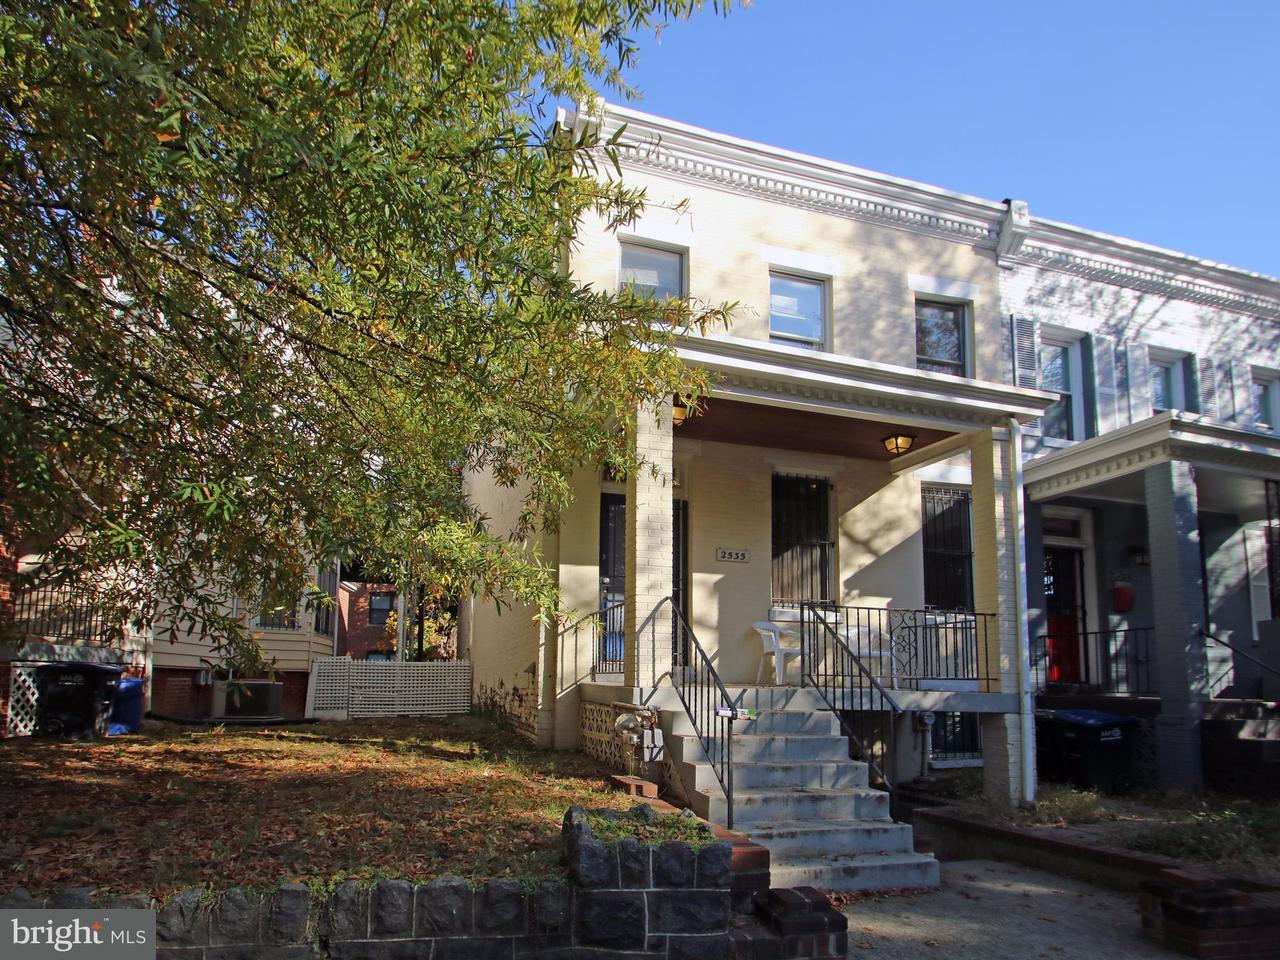 Townhouse for Sale at 2535 11TH ST NW 2535 11TH ST NW Washington, District Of Columbia 20001 United States